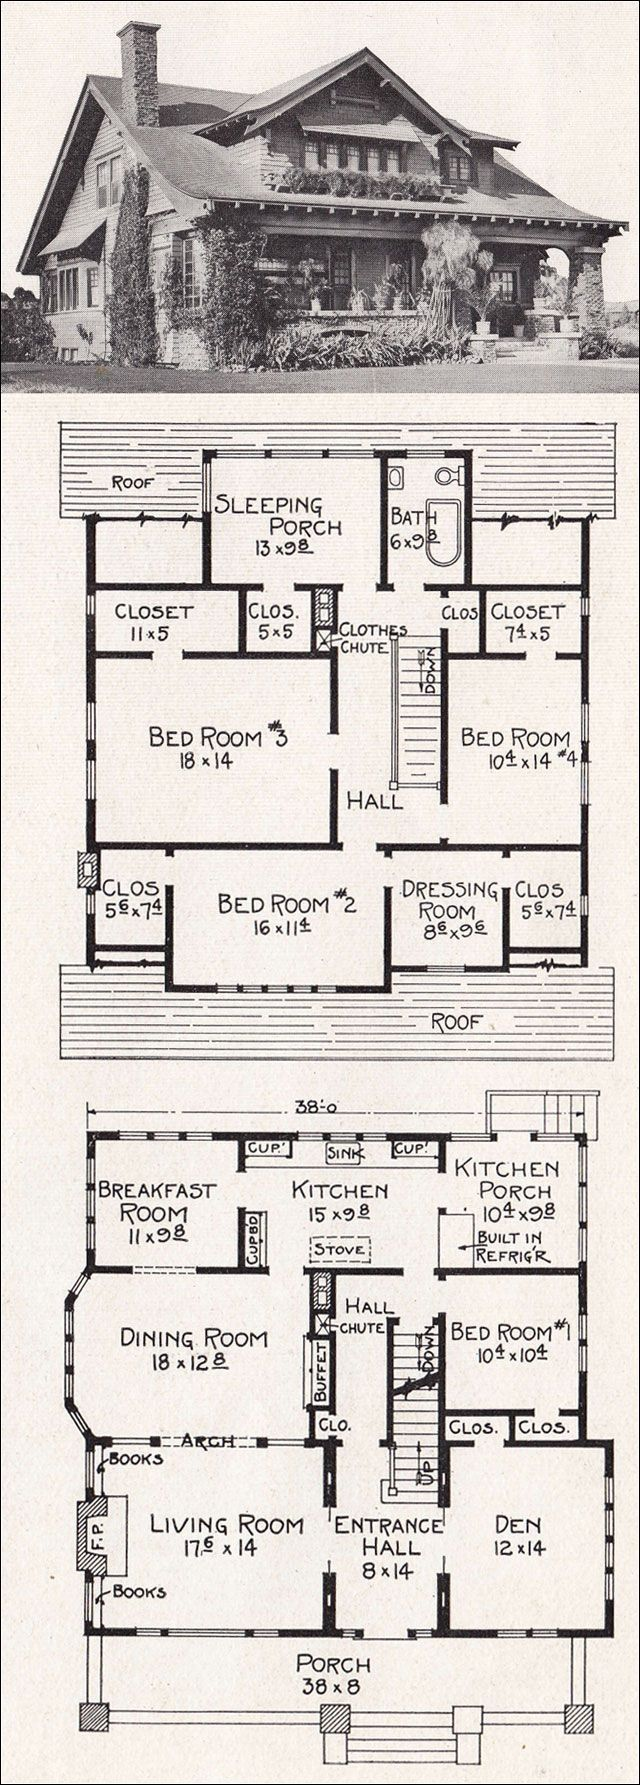 vintage house plan that can easily be conformed to our modern day life style i